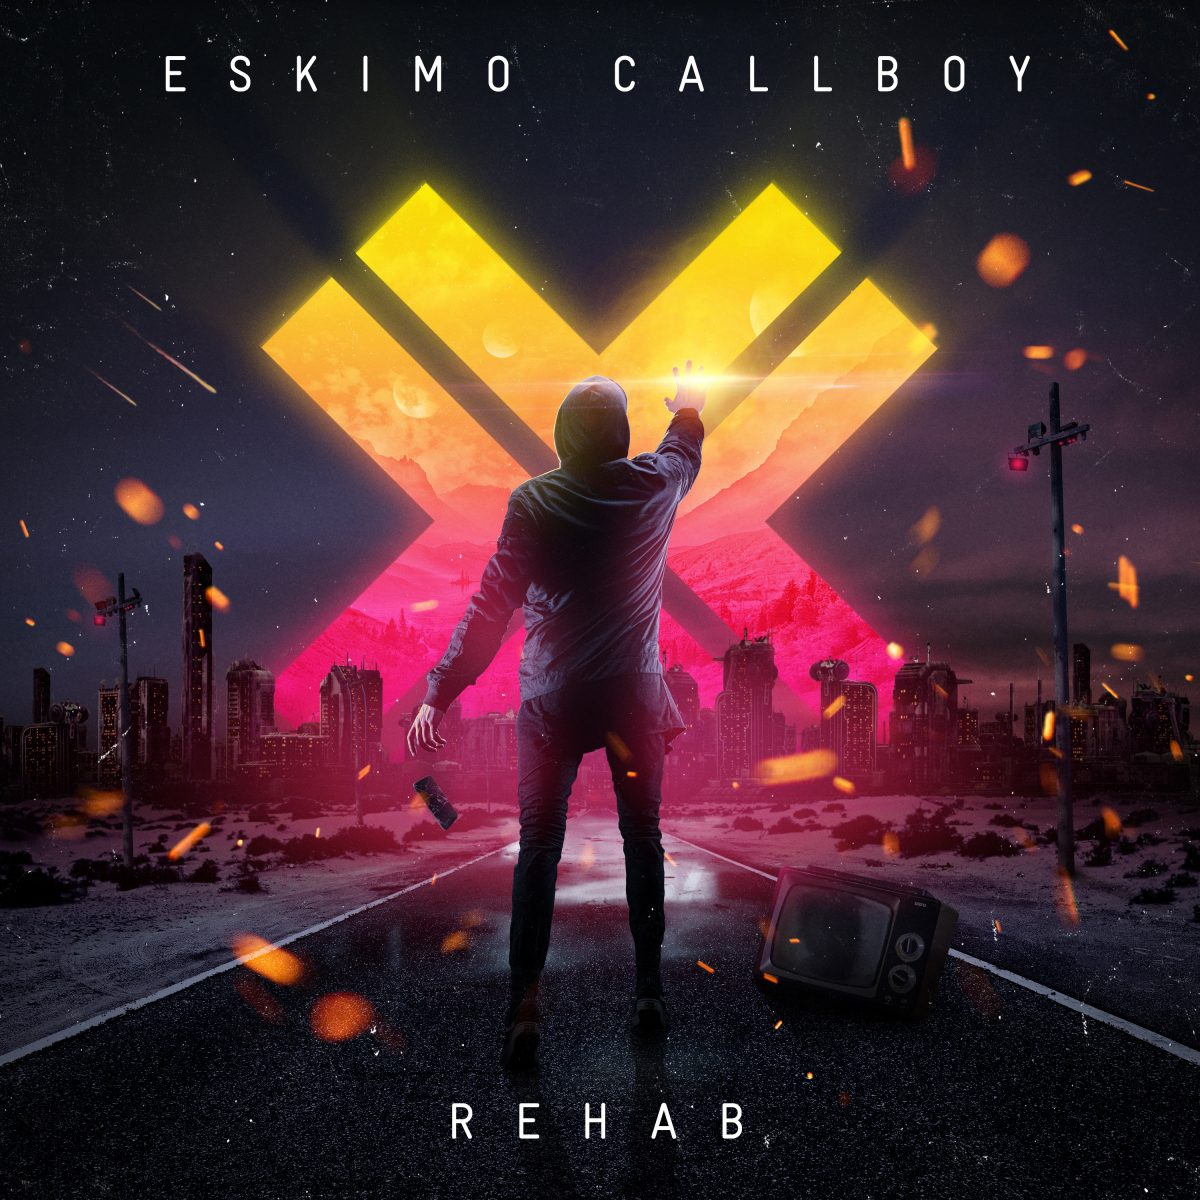 eskimo-callboy-rehab-nahe-an-der-perfektion-album-review